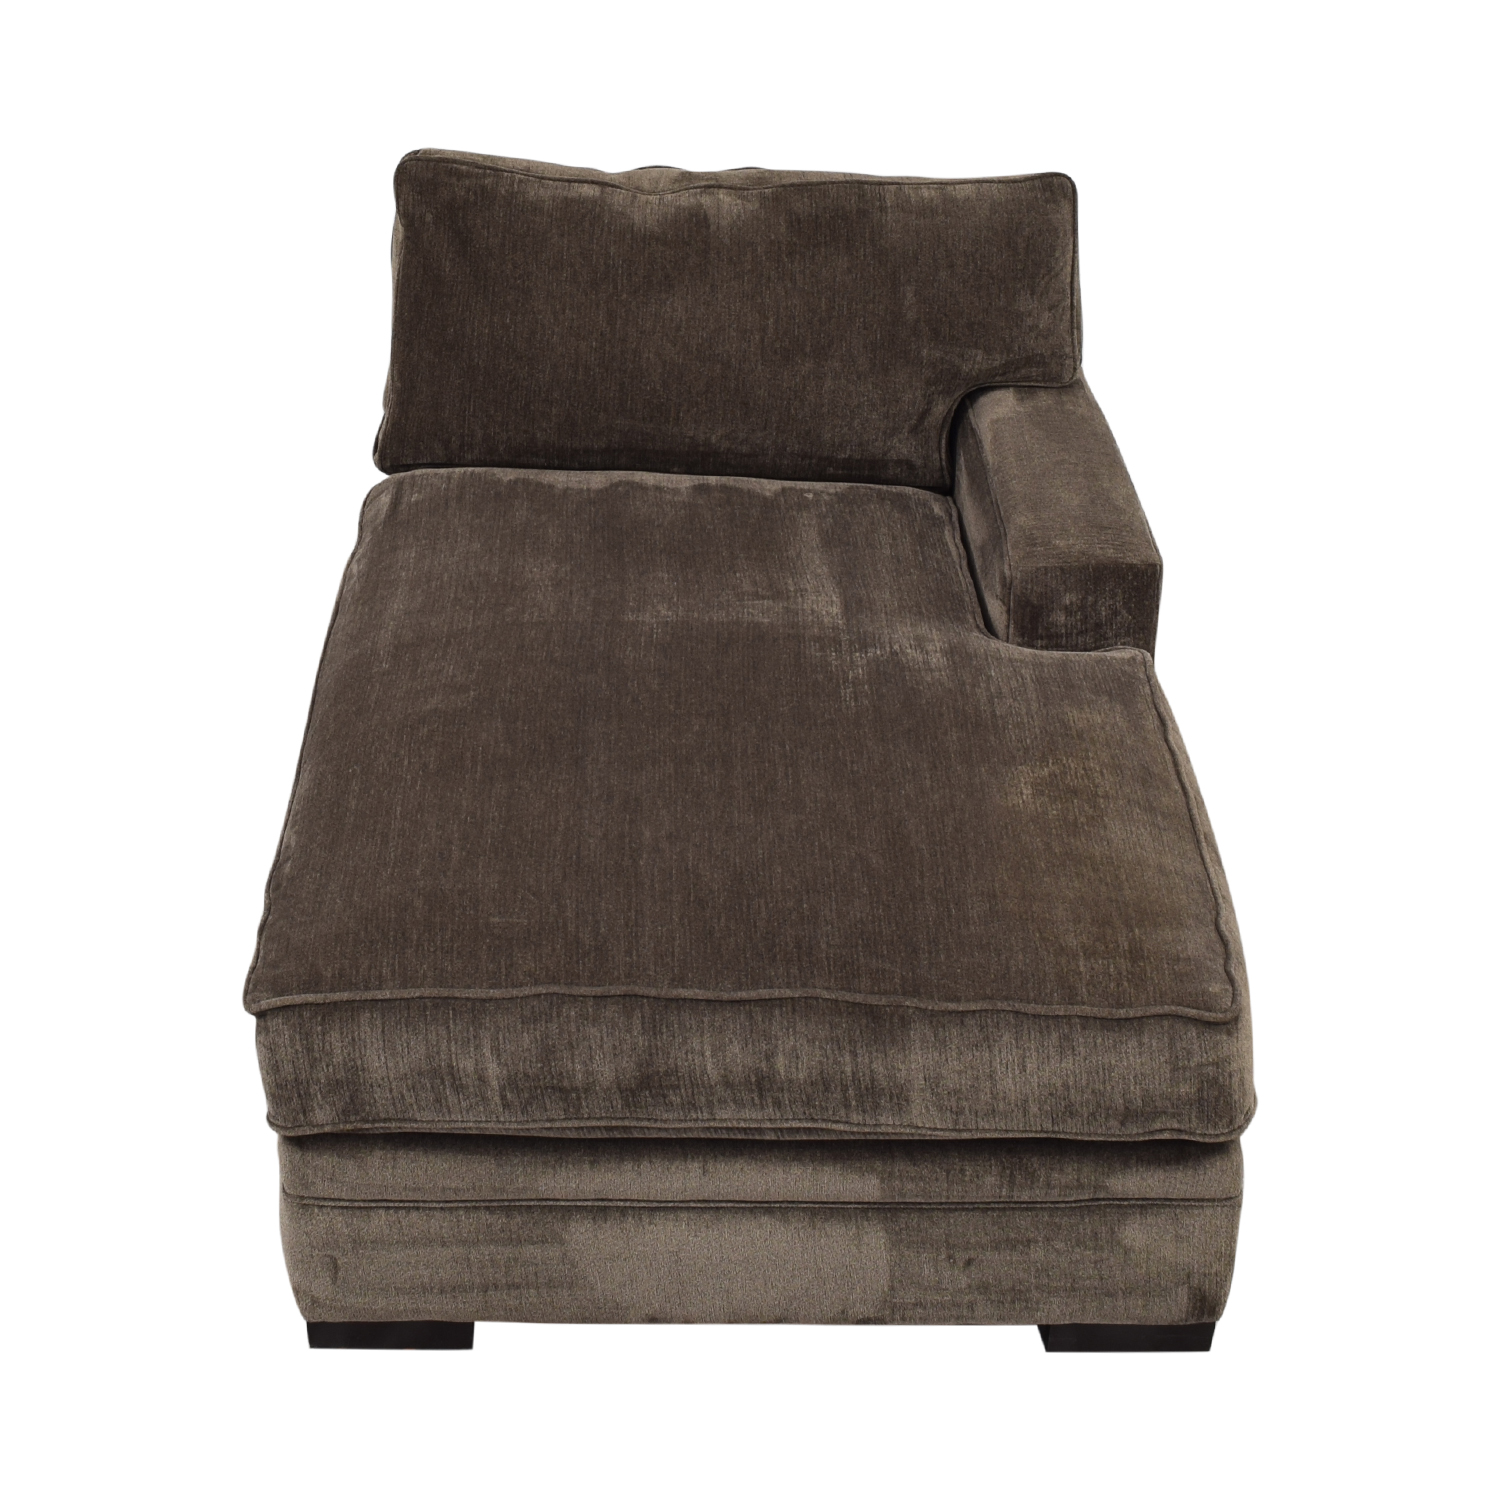 buy Macy's Macy's Teddy Brown Chaise Lounger online